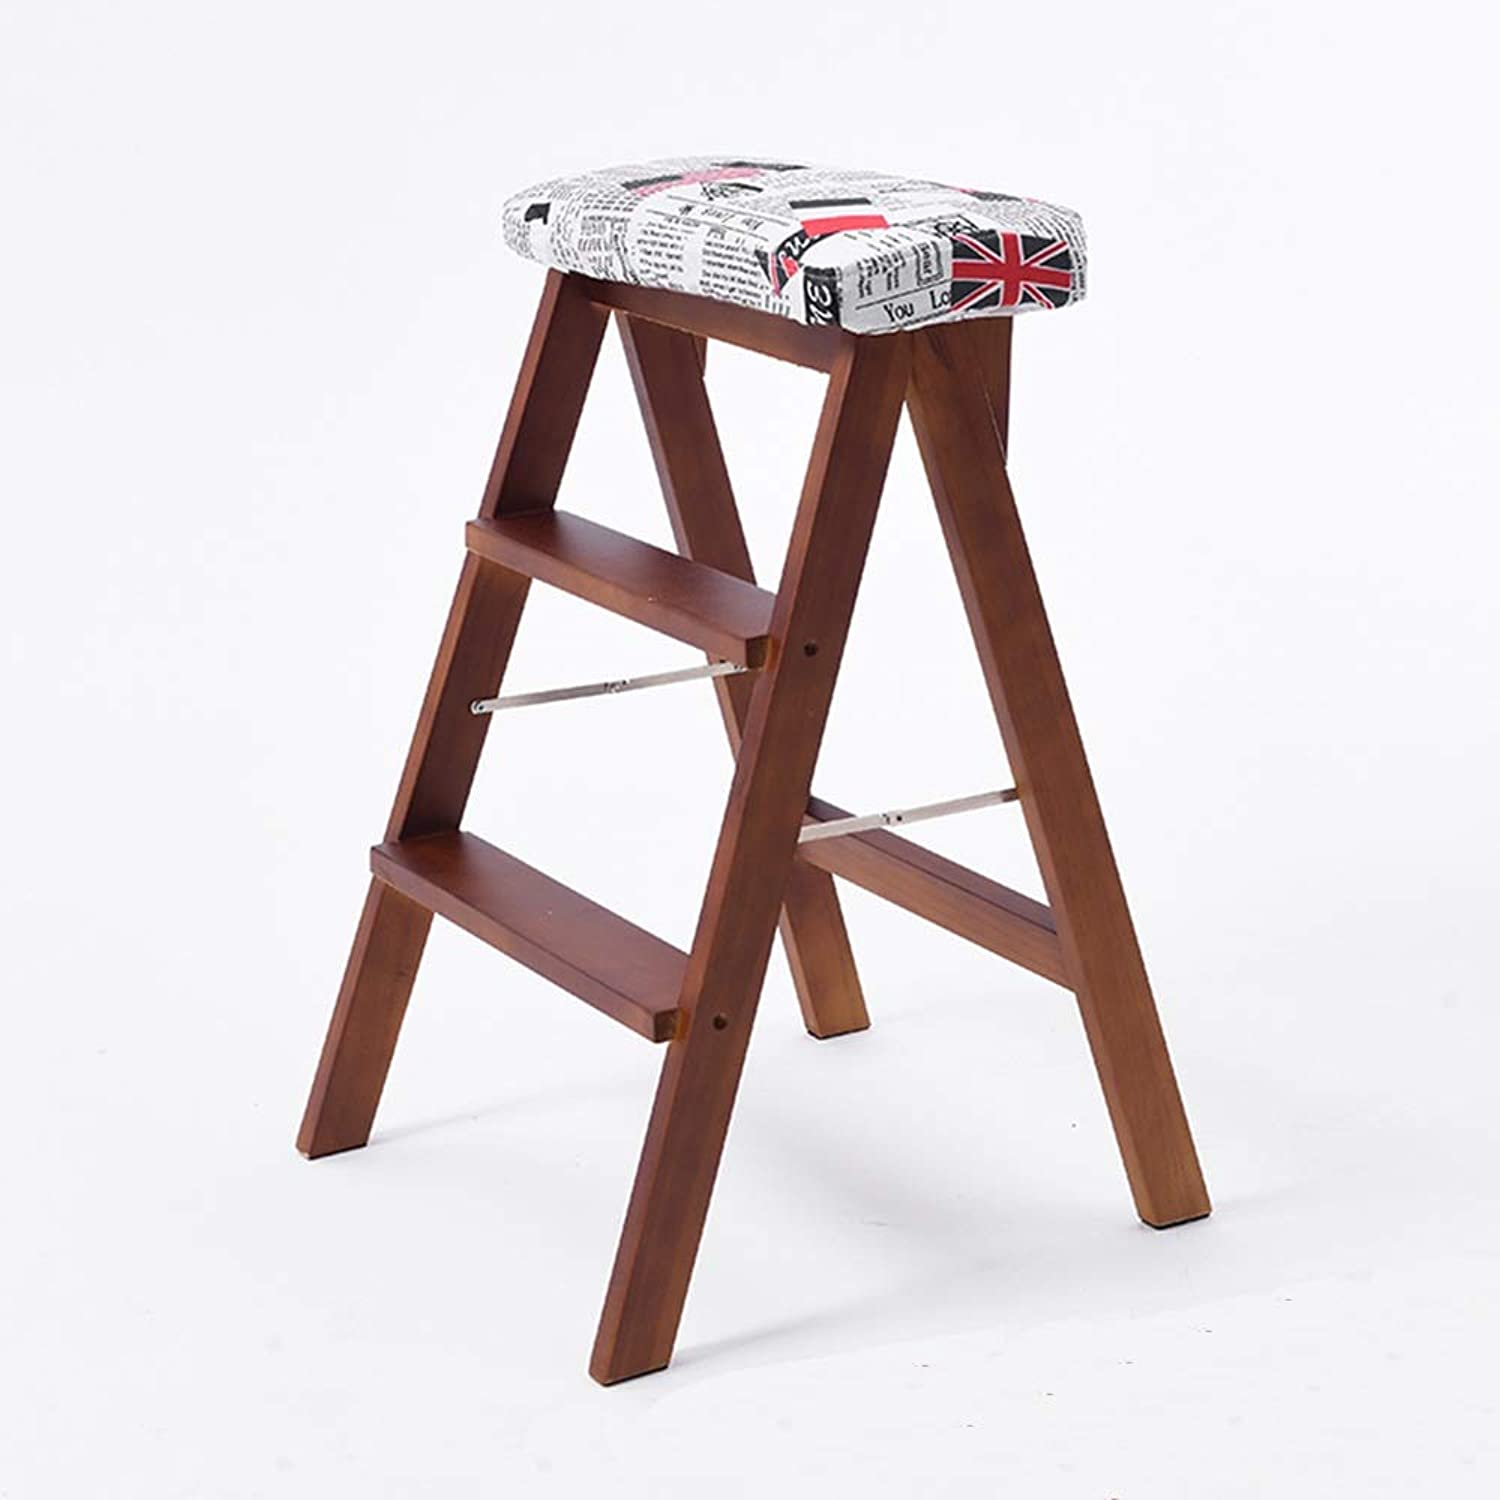 LJHA ertongcanyi Stool, Household Solid Wood Folding Chair Space Room Indoor Multi-Purpose Ladder Chair Dual-use Ascending Stair Stool 13 color Optional (color   English Flag - Walnut)